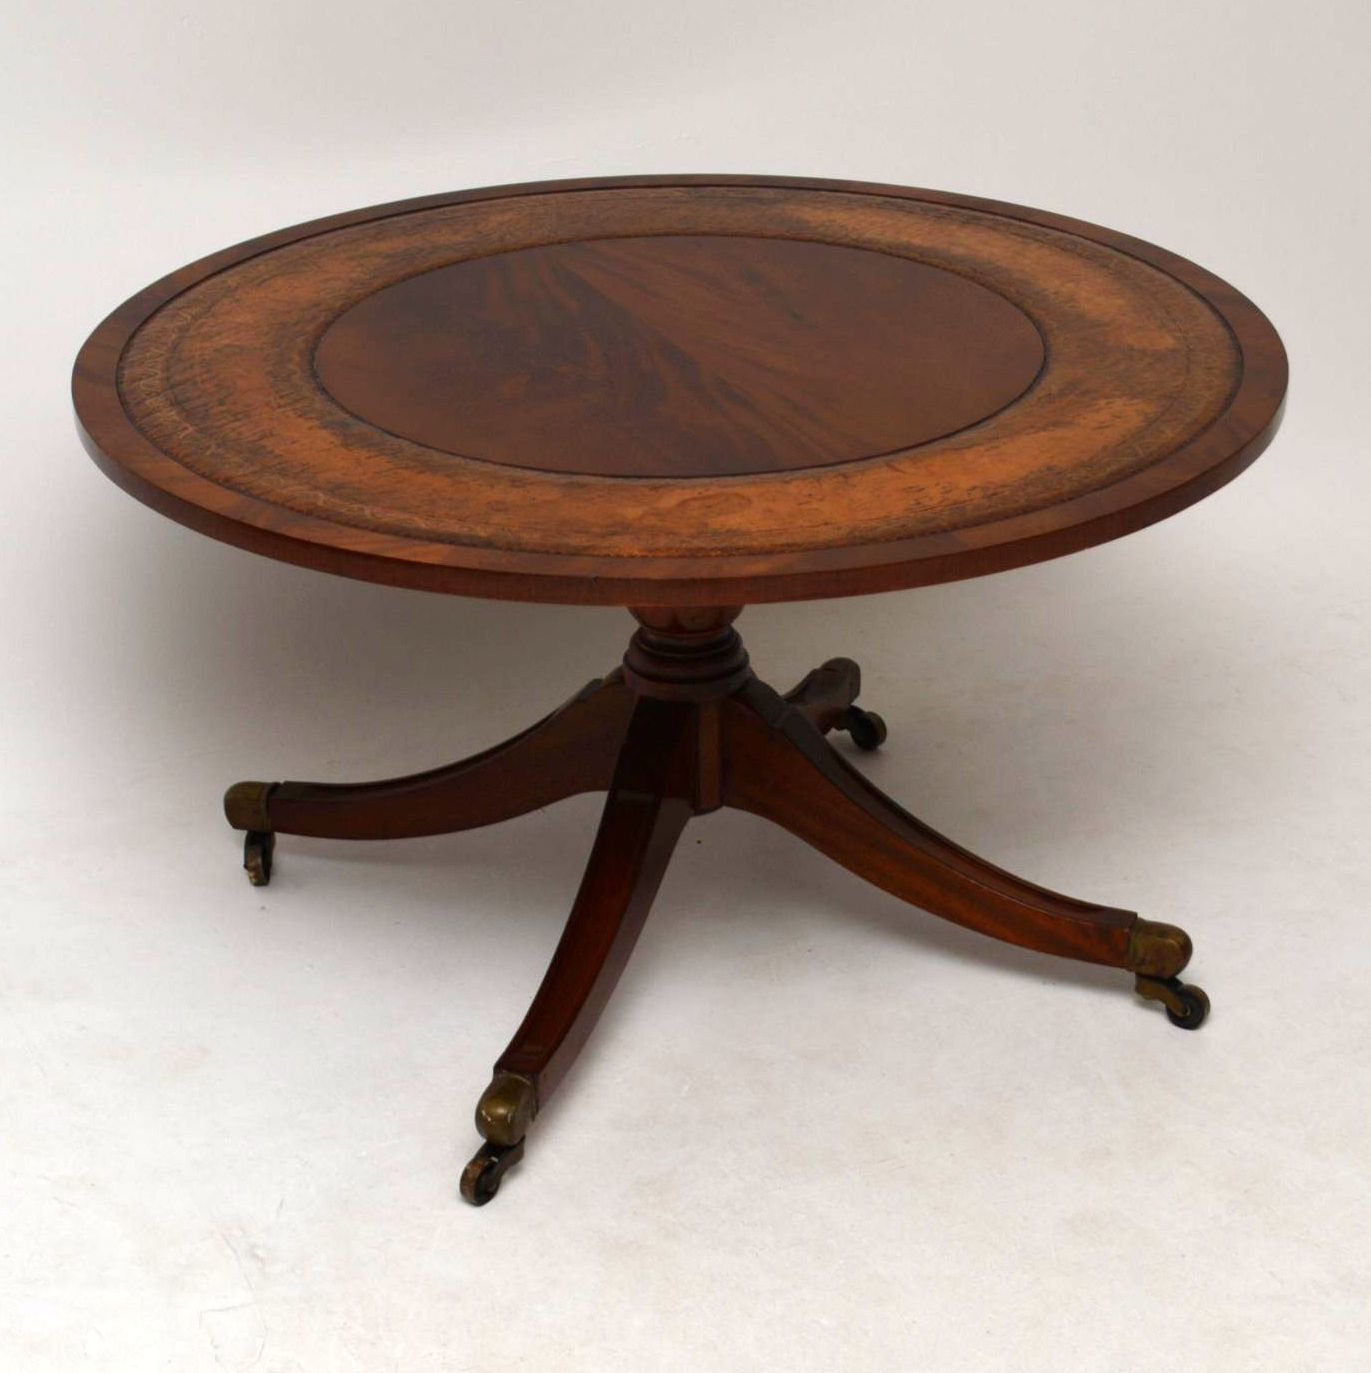 - Antique Mahogany & Leather Coffee Table